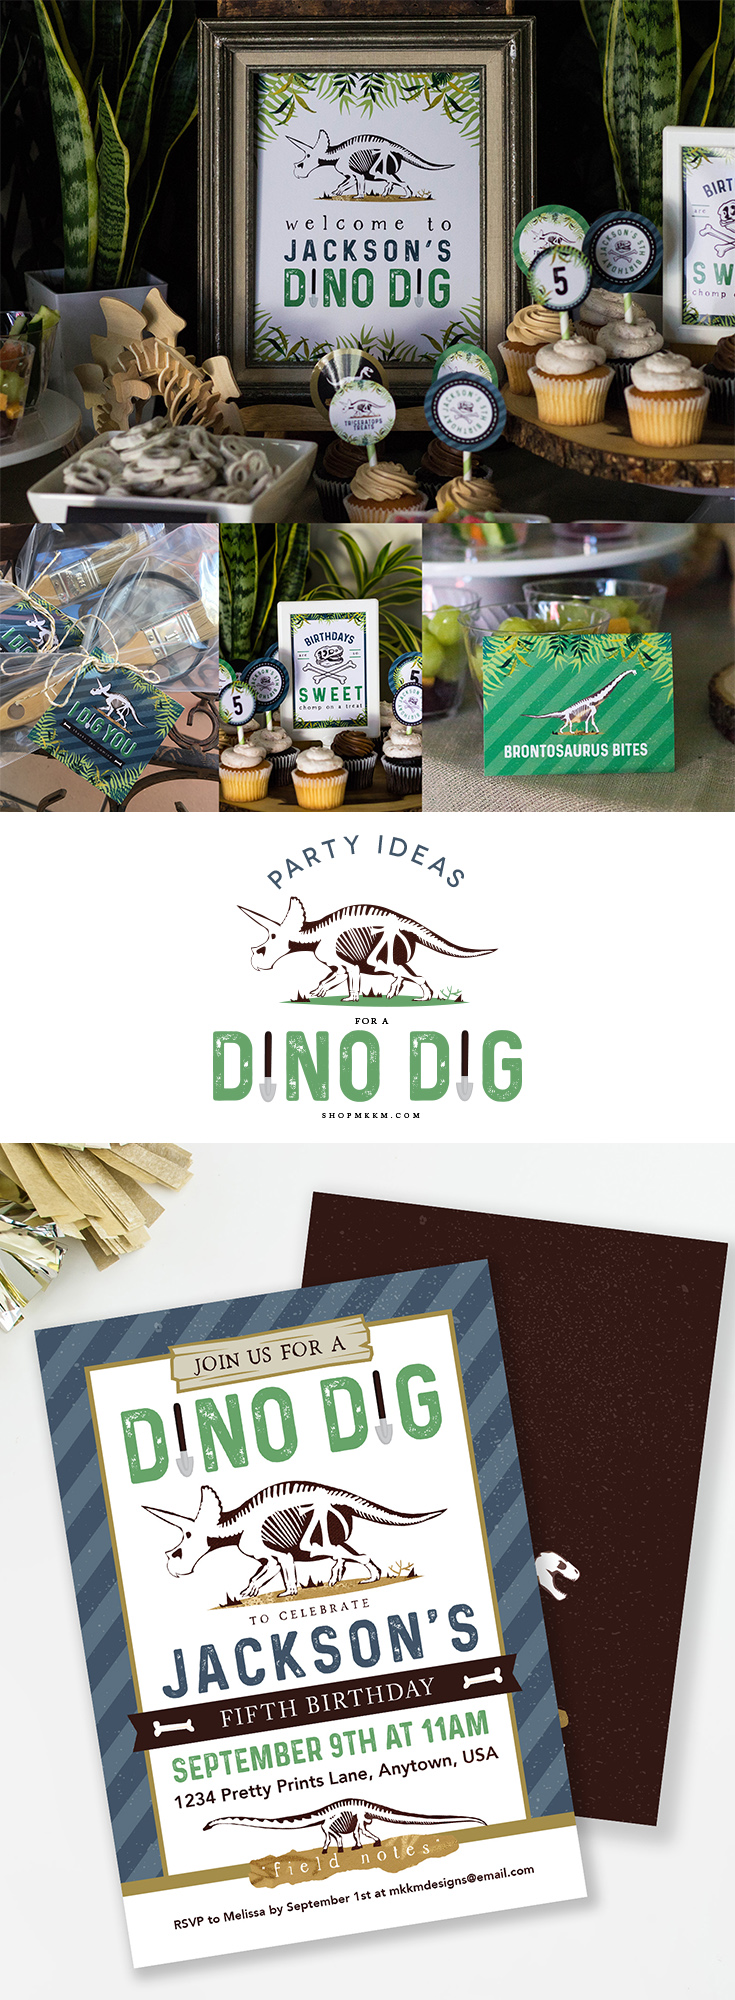 Party ideas for a Dinosaur Dig. Free printables and tons of dinosaur party ideas for a little paleontologist. Designs from Melissa at mkkmdesigns.